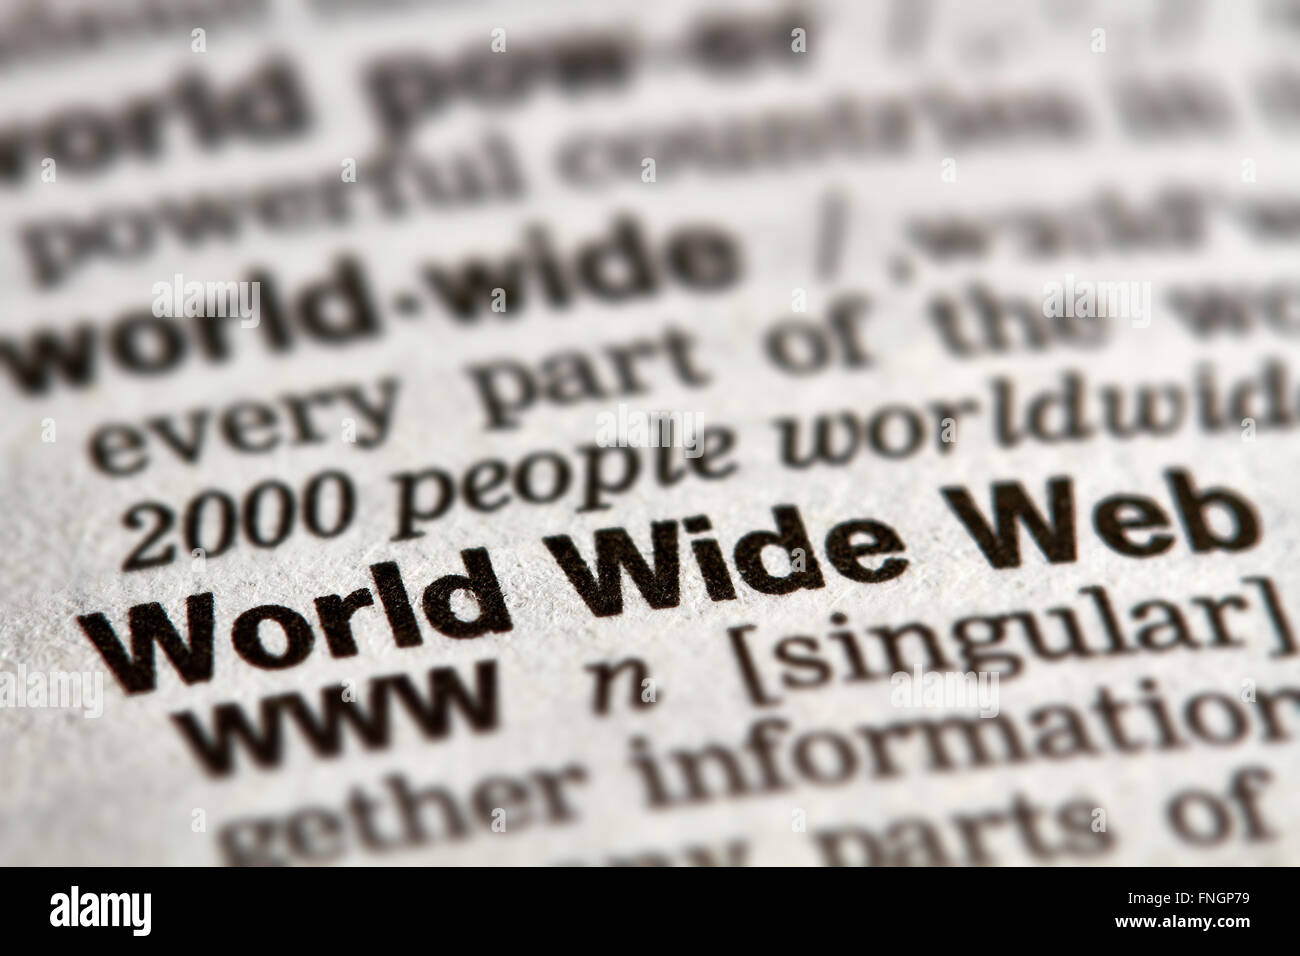 World Wide Web Word Definition Text in Dictionary Page - Stock Image